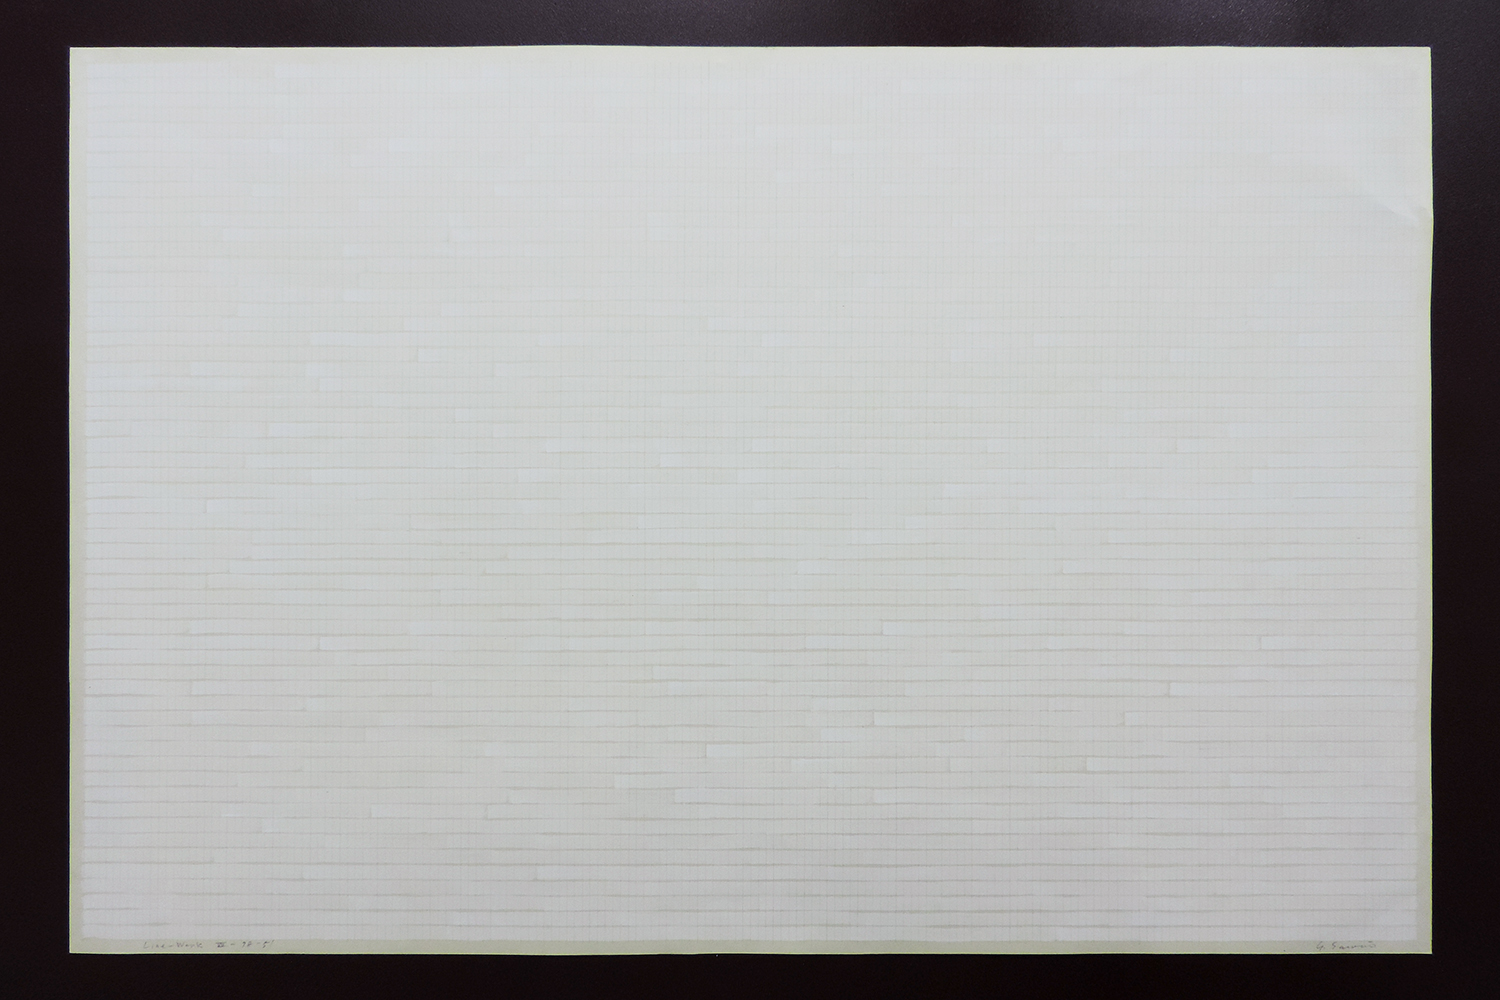 Line-Work VII-78-5' |Acrylic, Red pencil, Watson paper|60 x 90 cm|1978